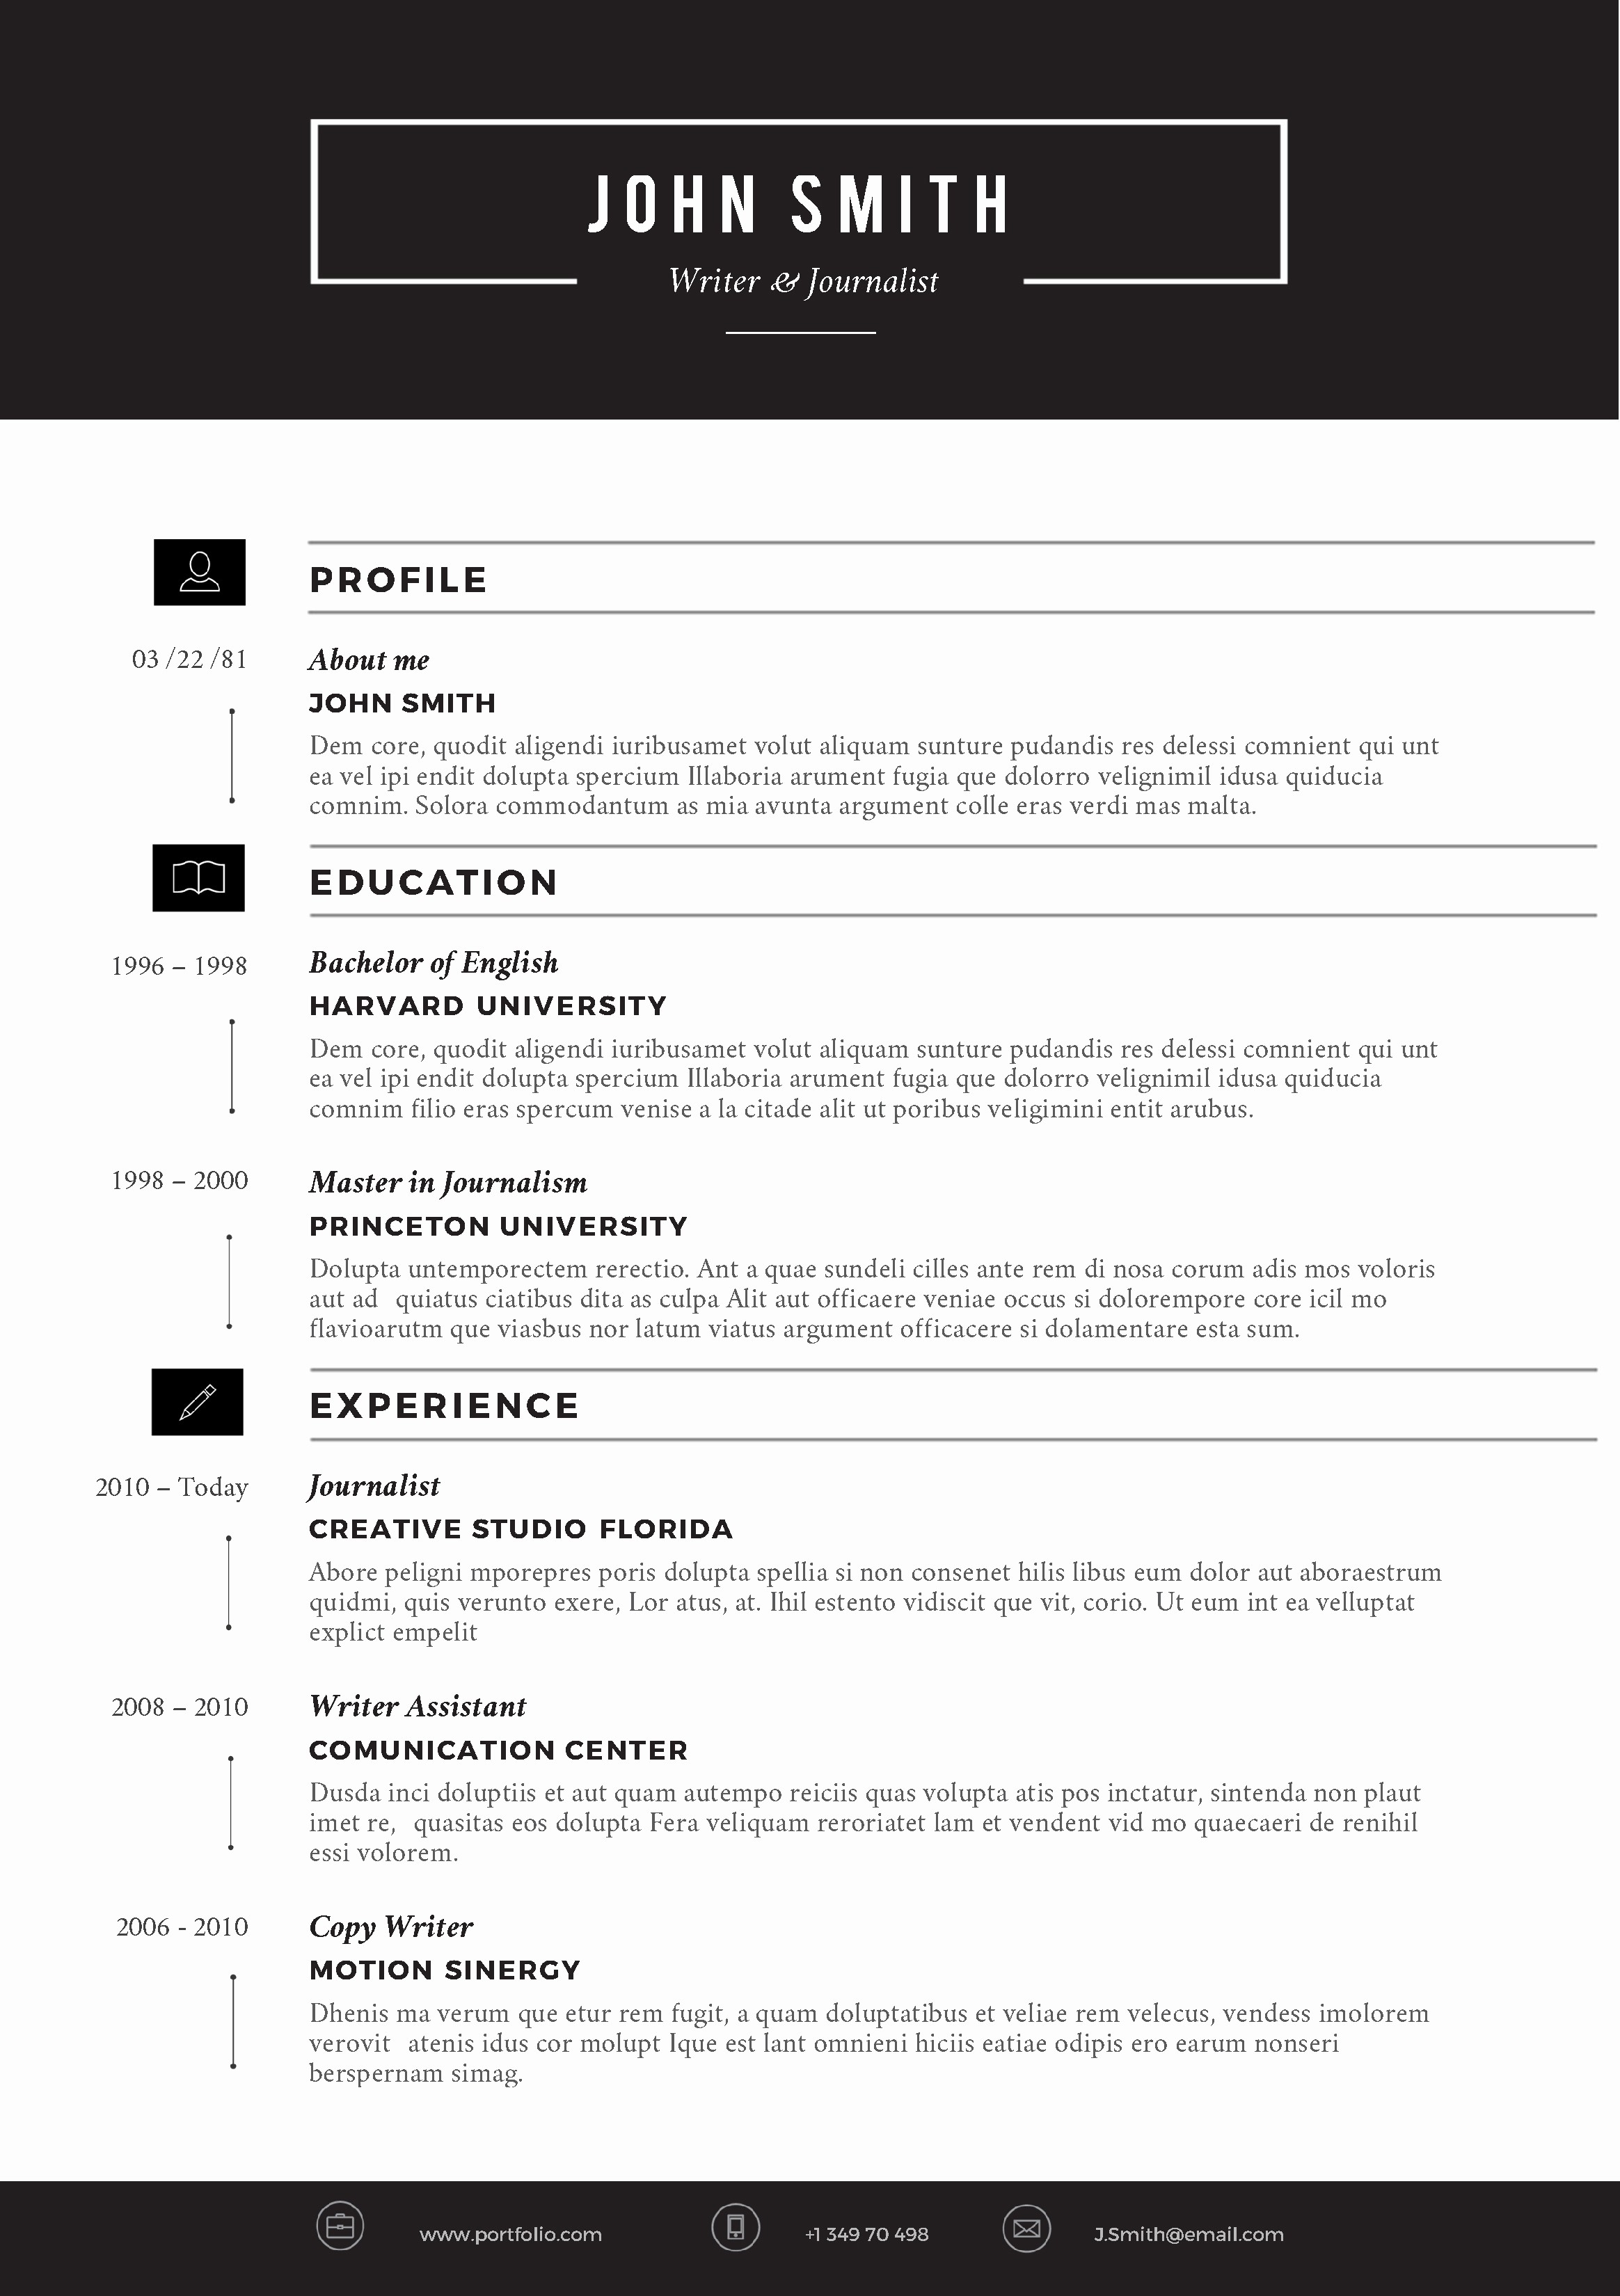 Creative Resume Template Microsoft Word Awesome Creative Resume Template by Cvfolio Resumes